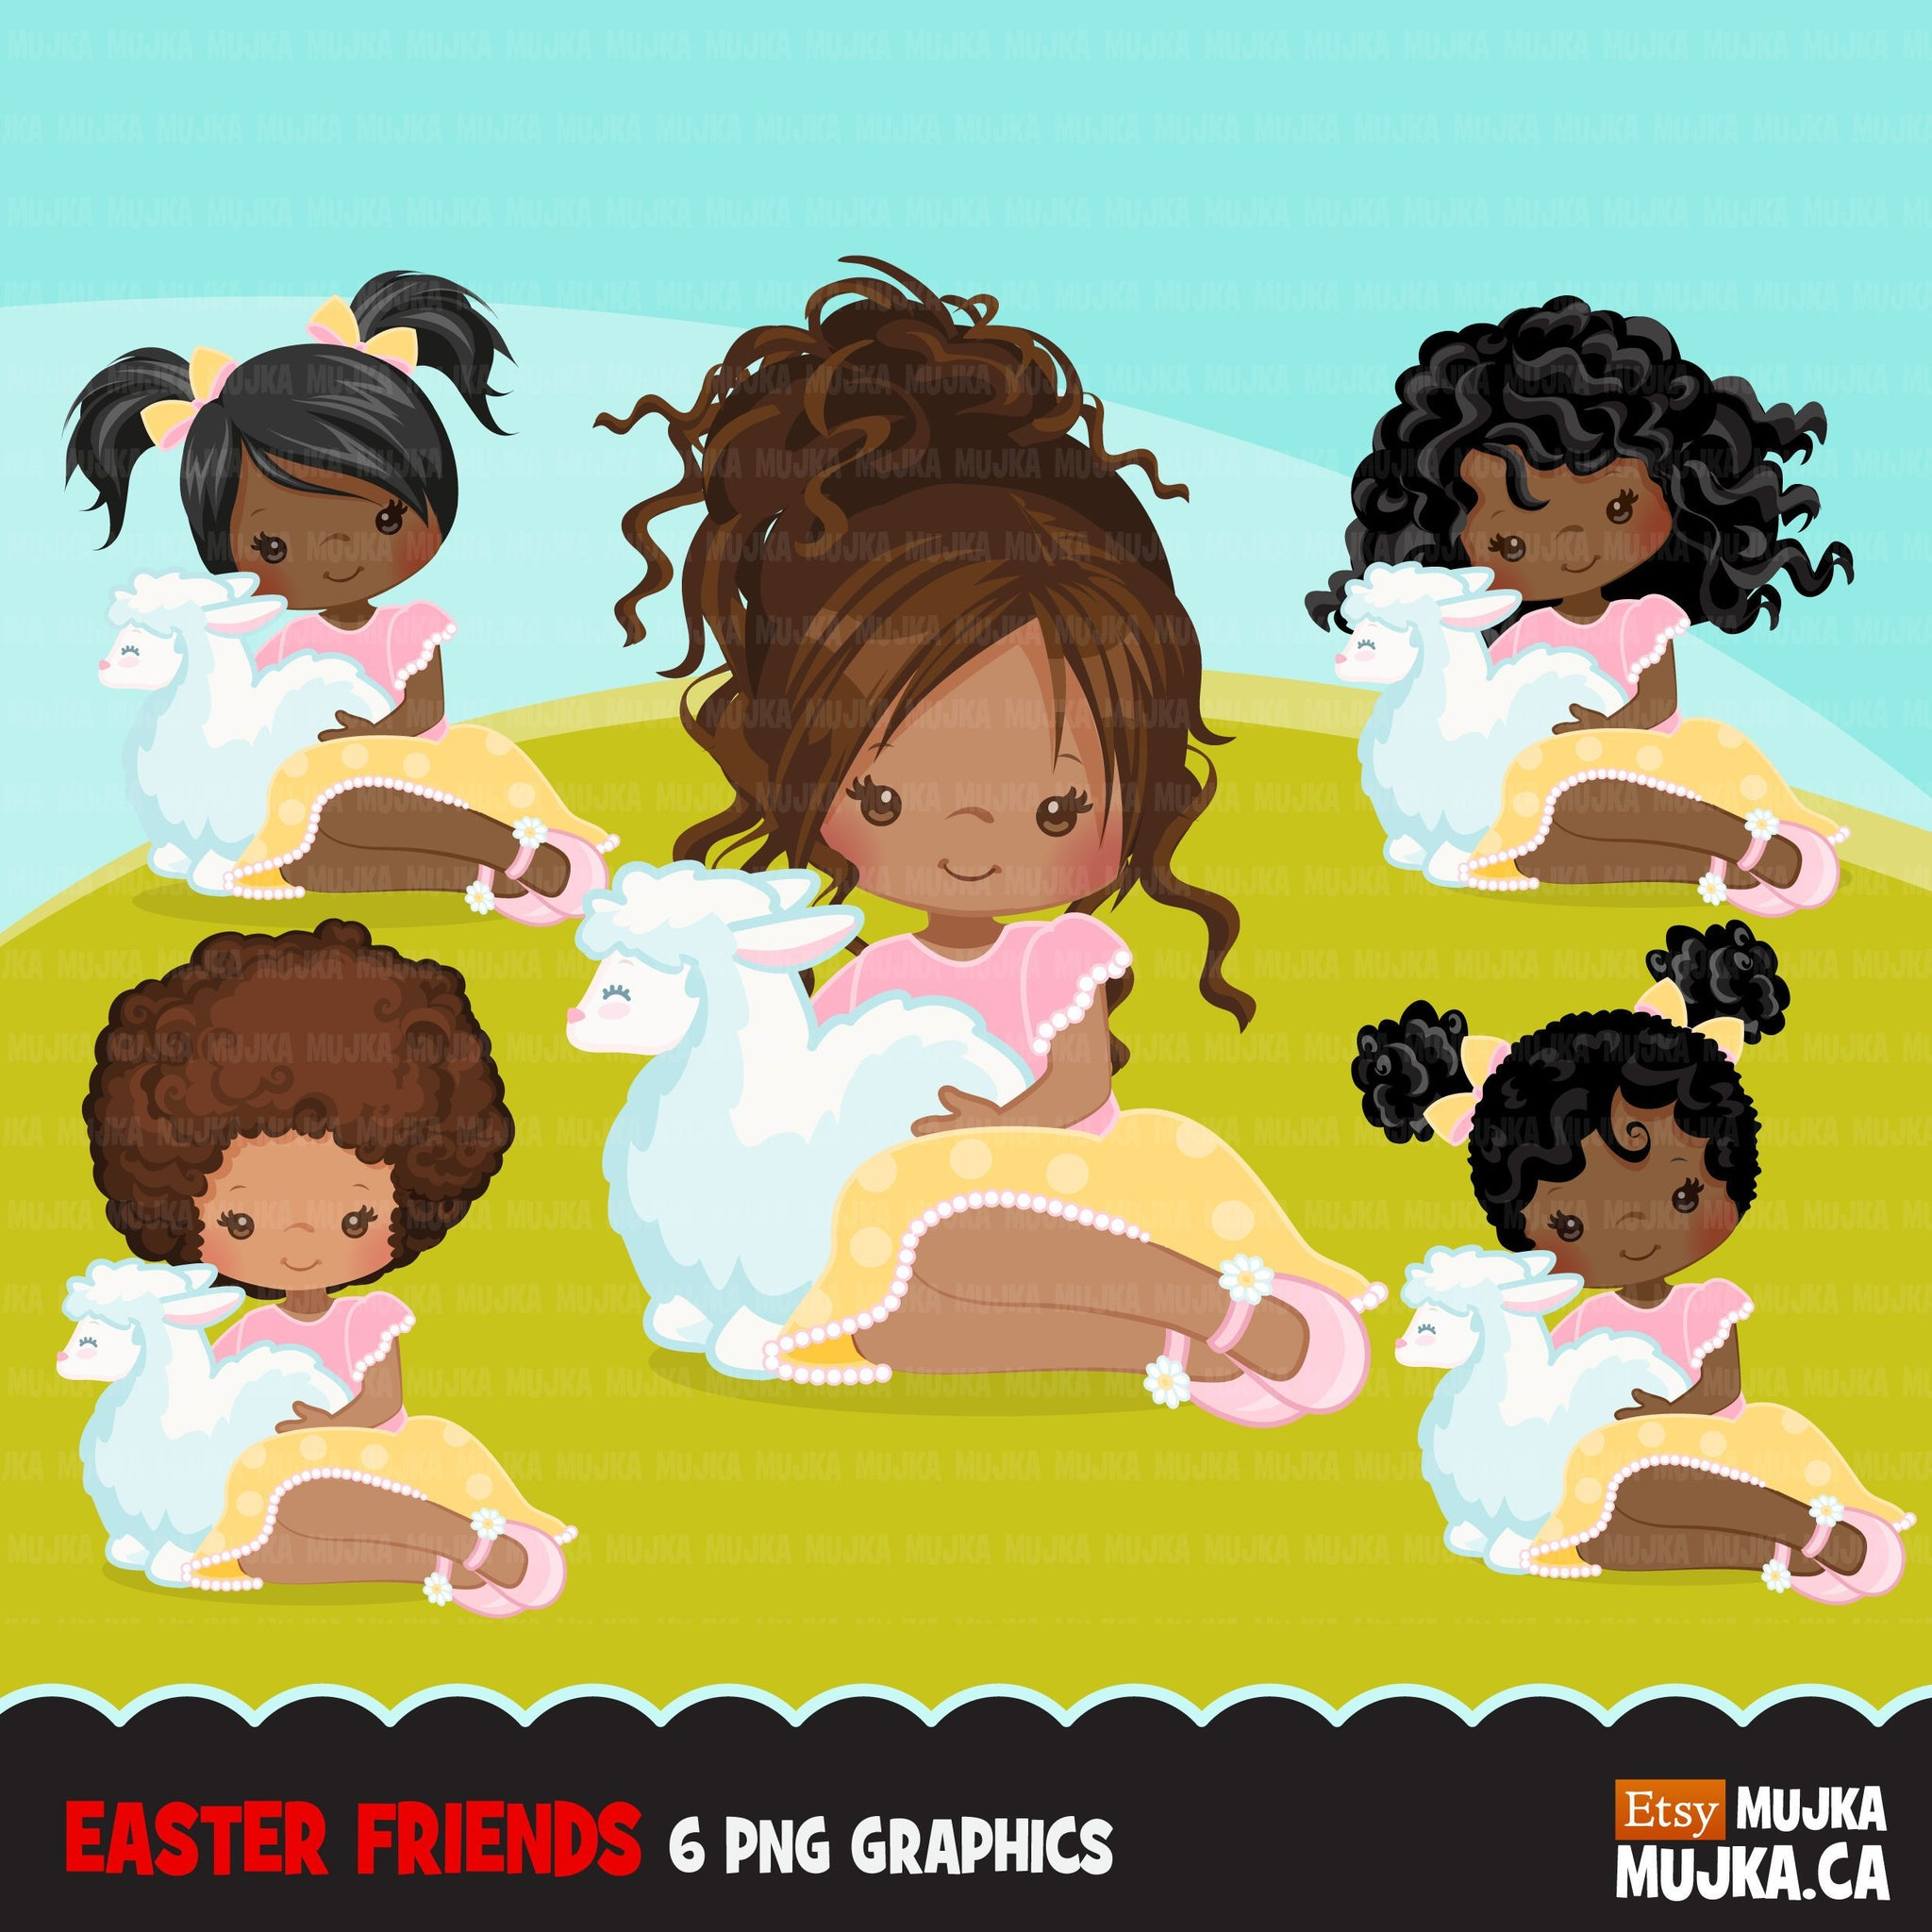 Easter black girl with lamb Clipart